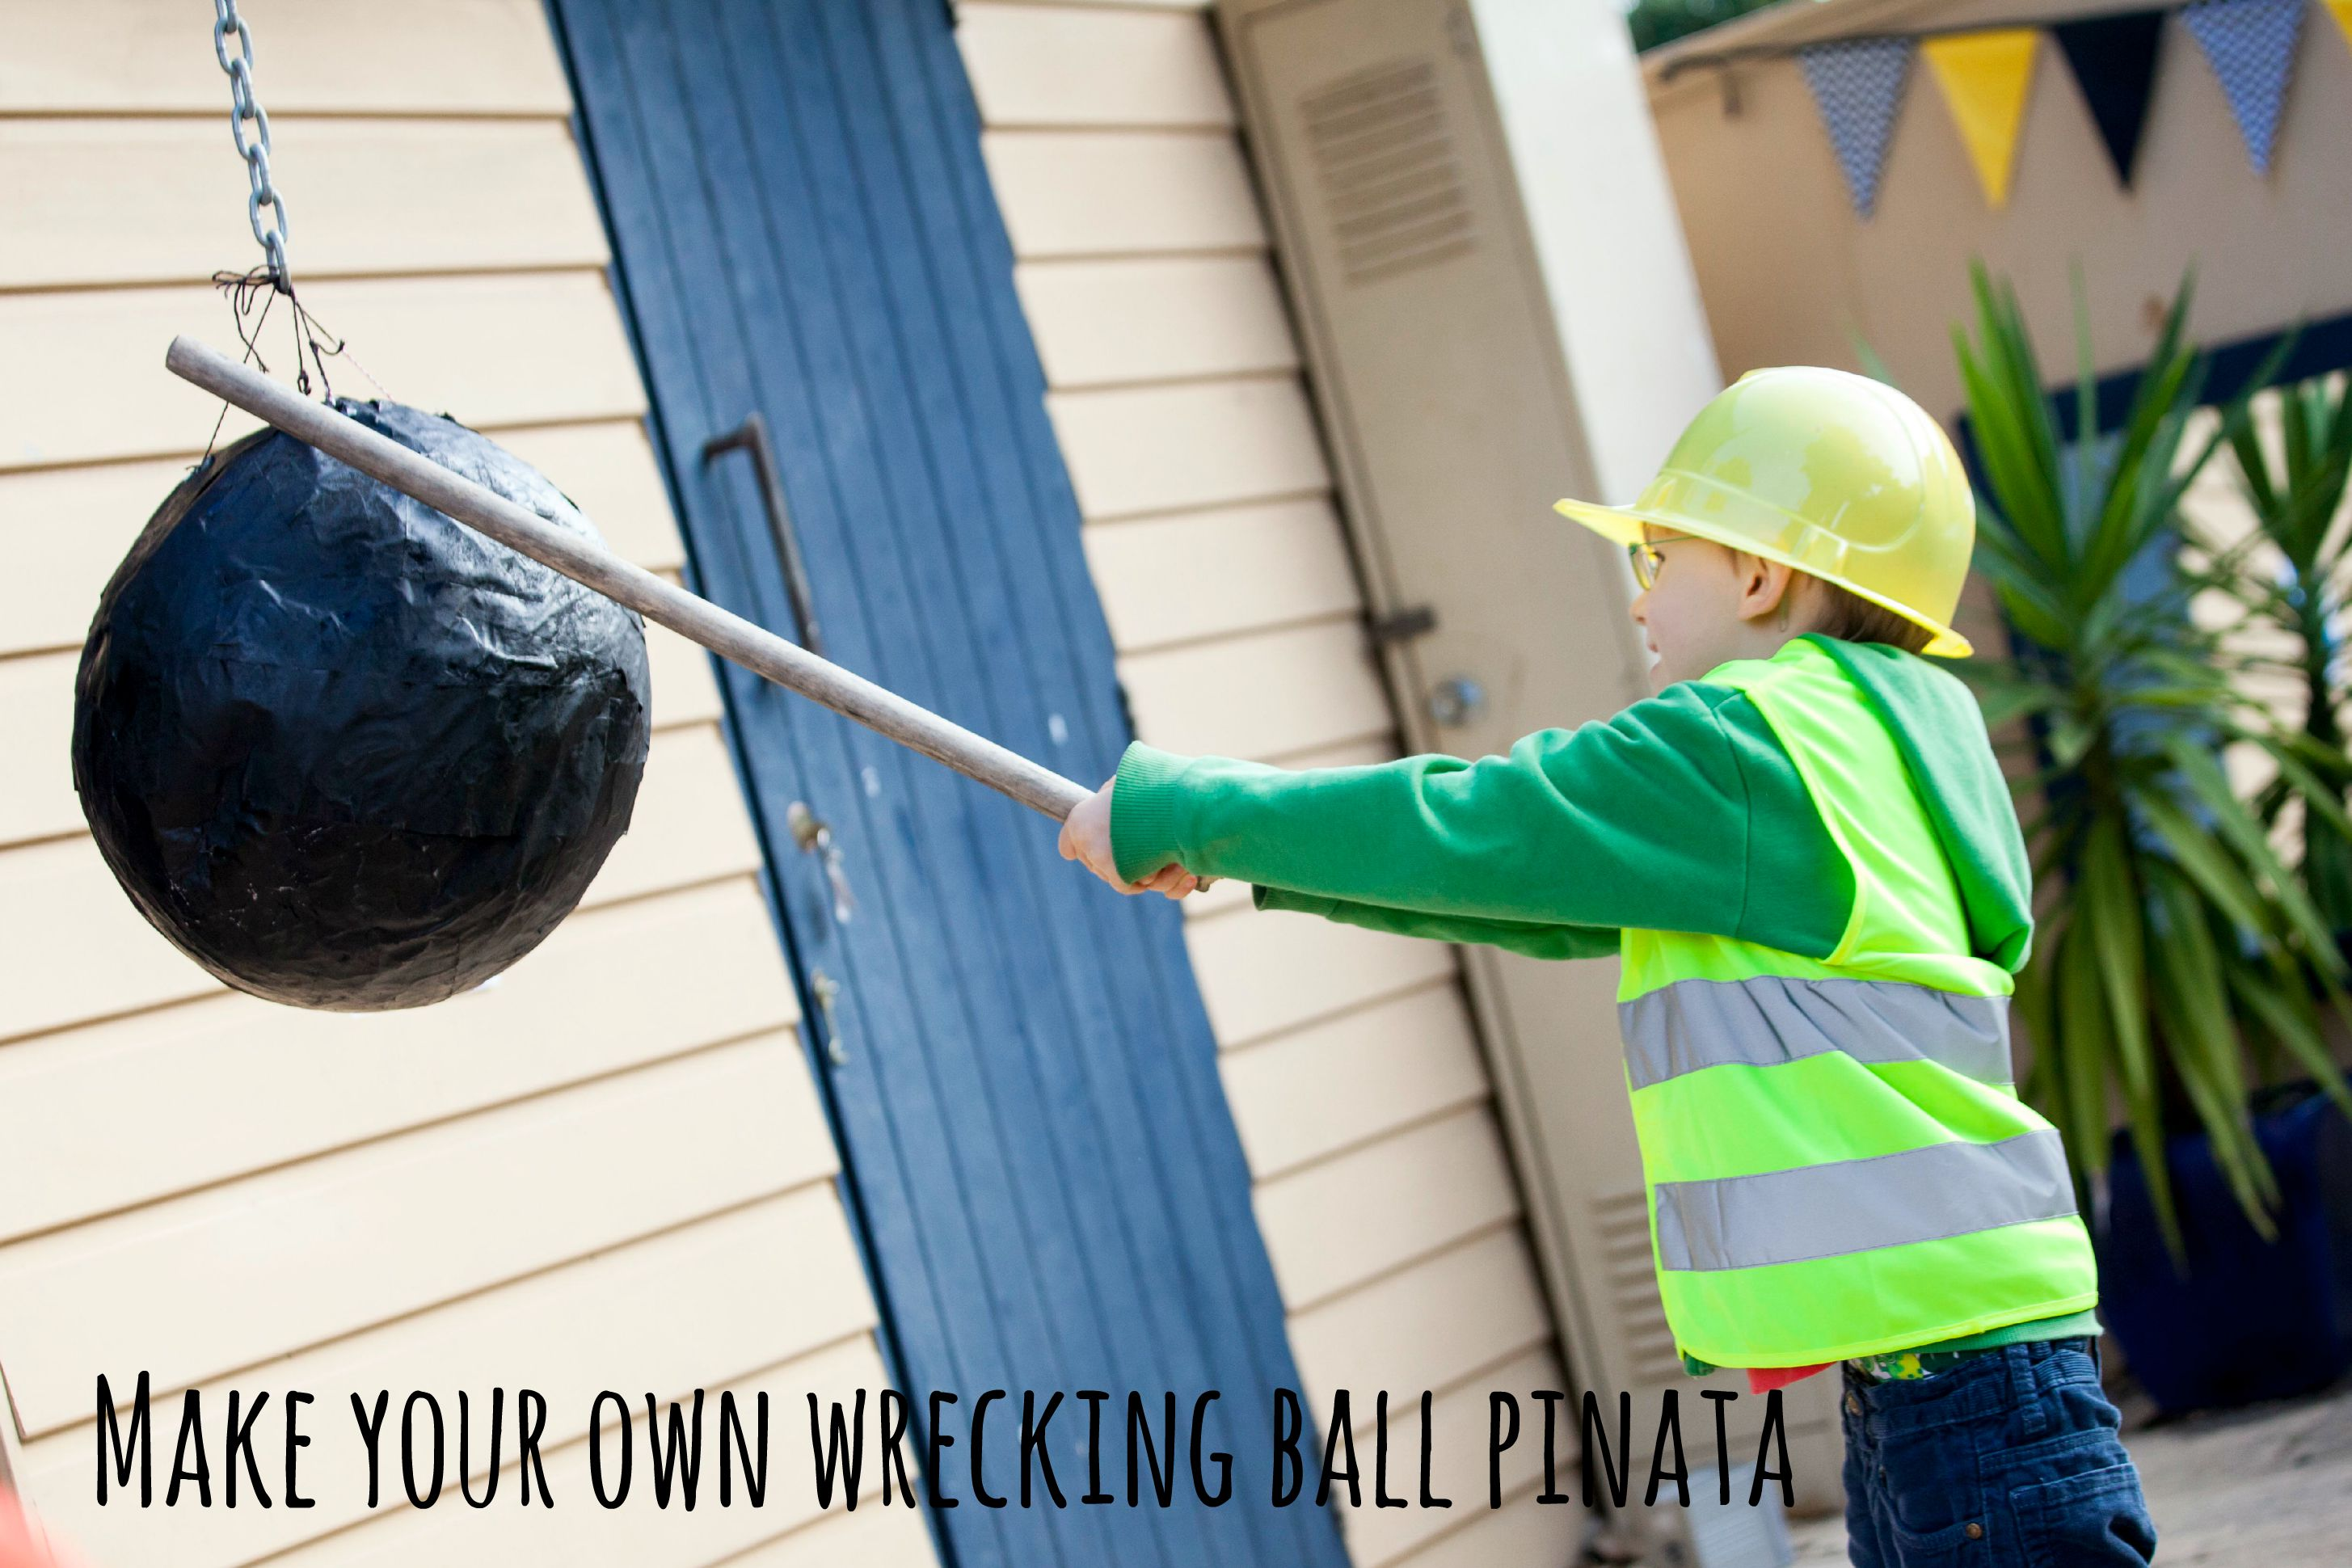 Make your own wrecking ball pinata - Life on Wallace